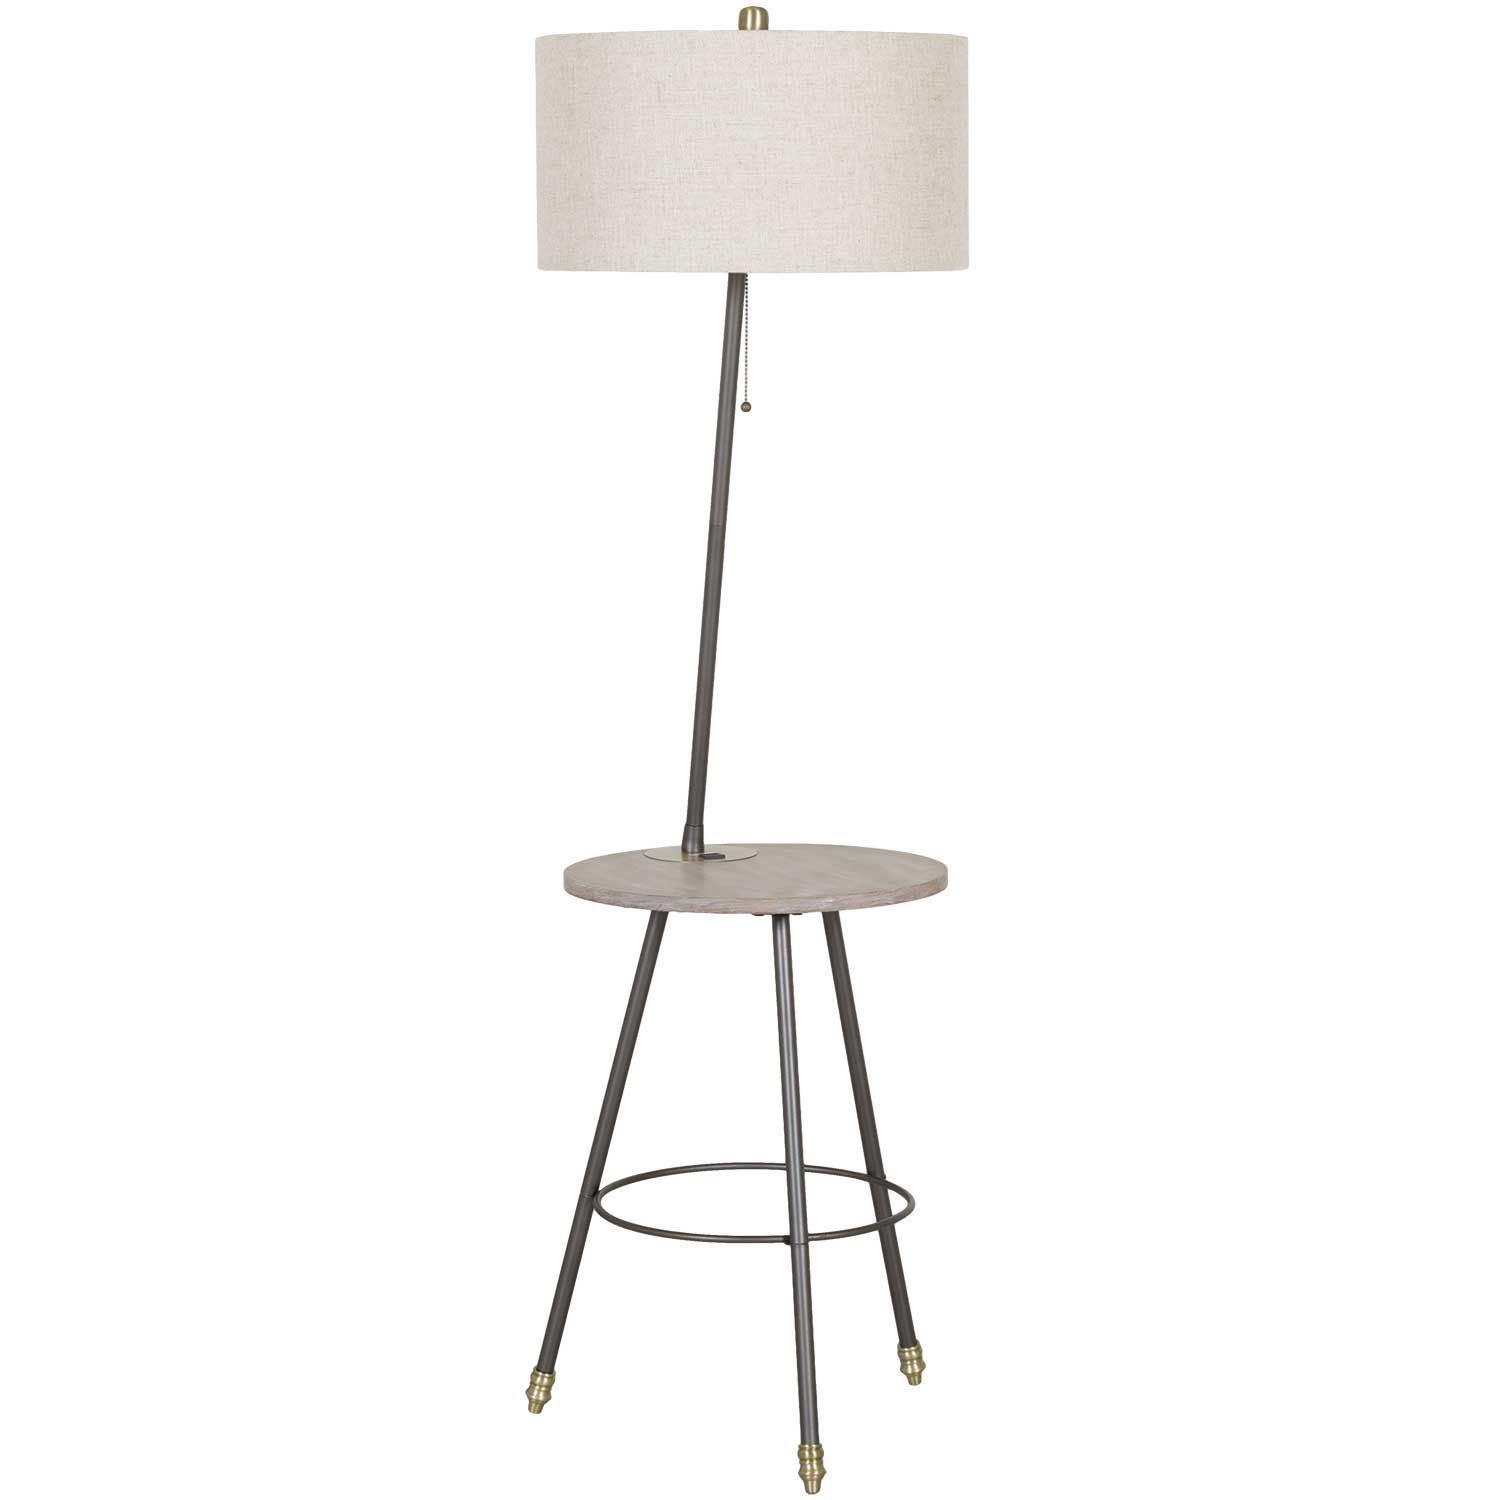 Picture of Iron floor lamp with USB table